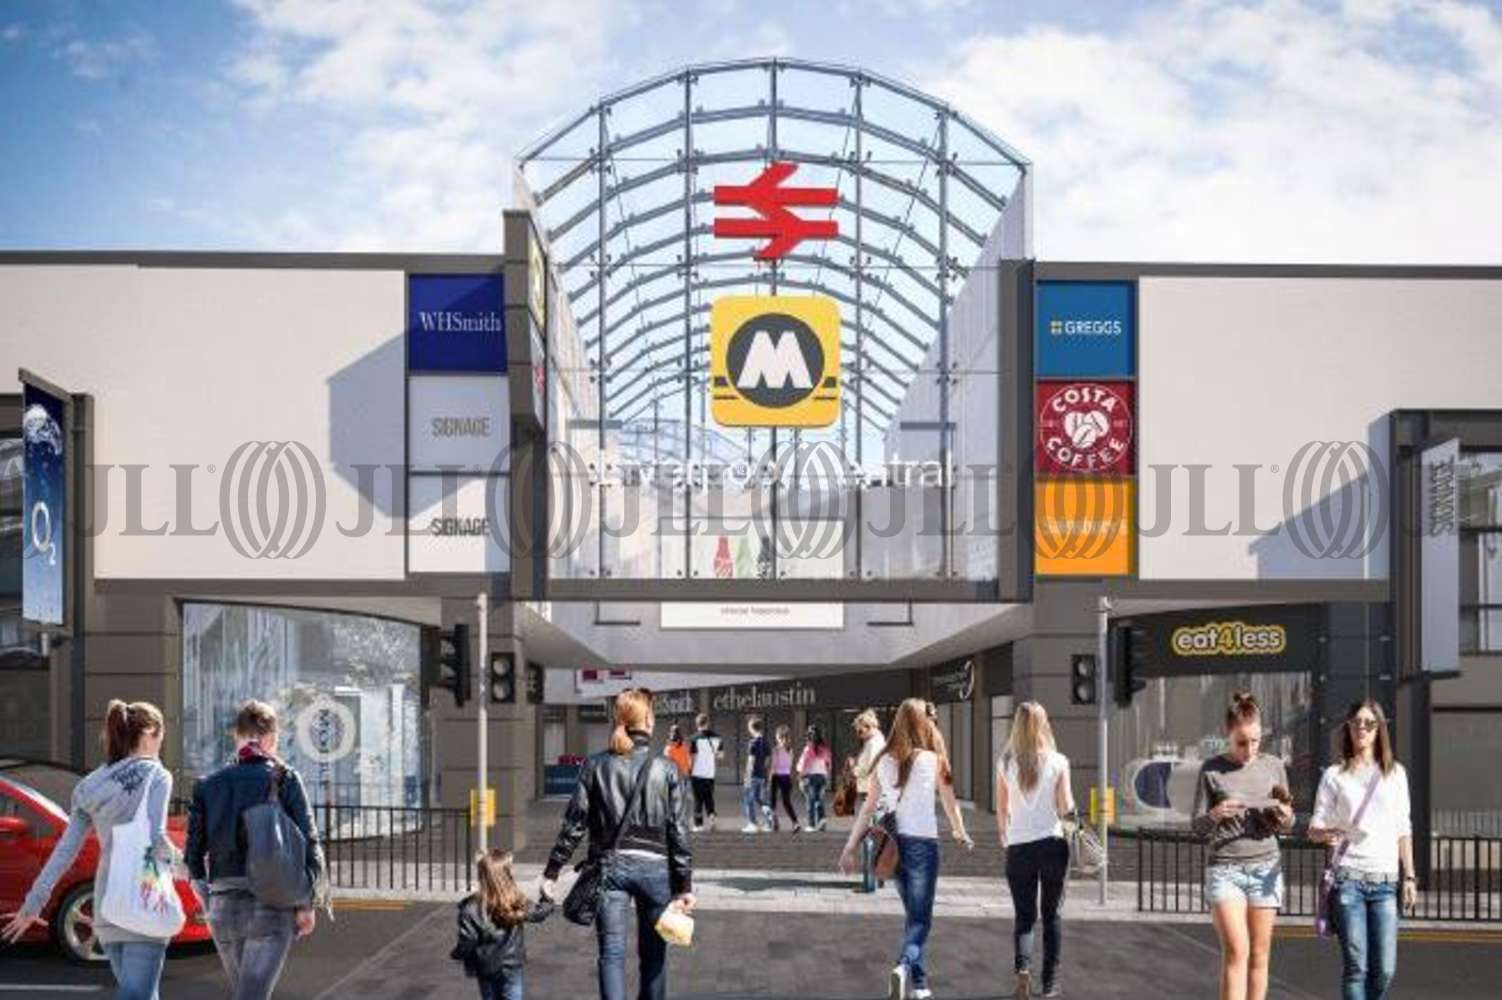 Retail shopping centre Liverpool, L1 1JT - Liverpool Central Station - Units 5 & 6